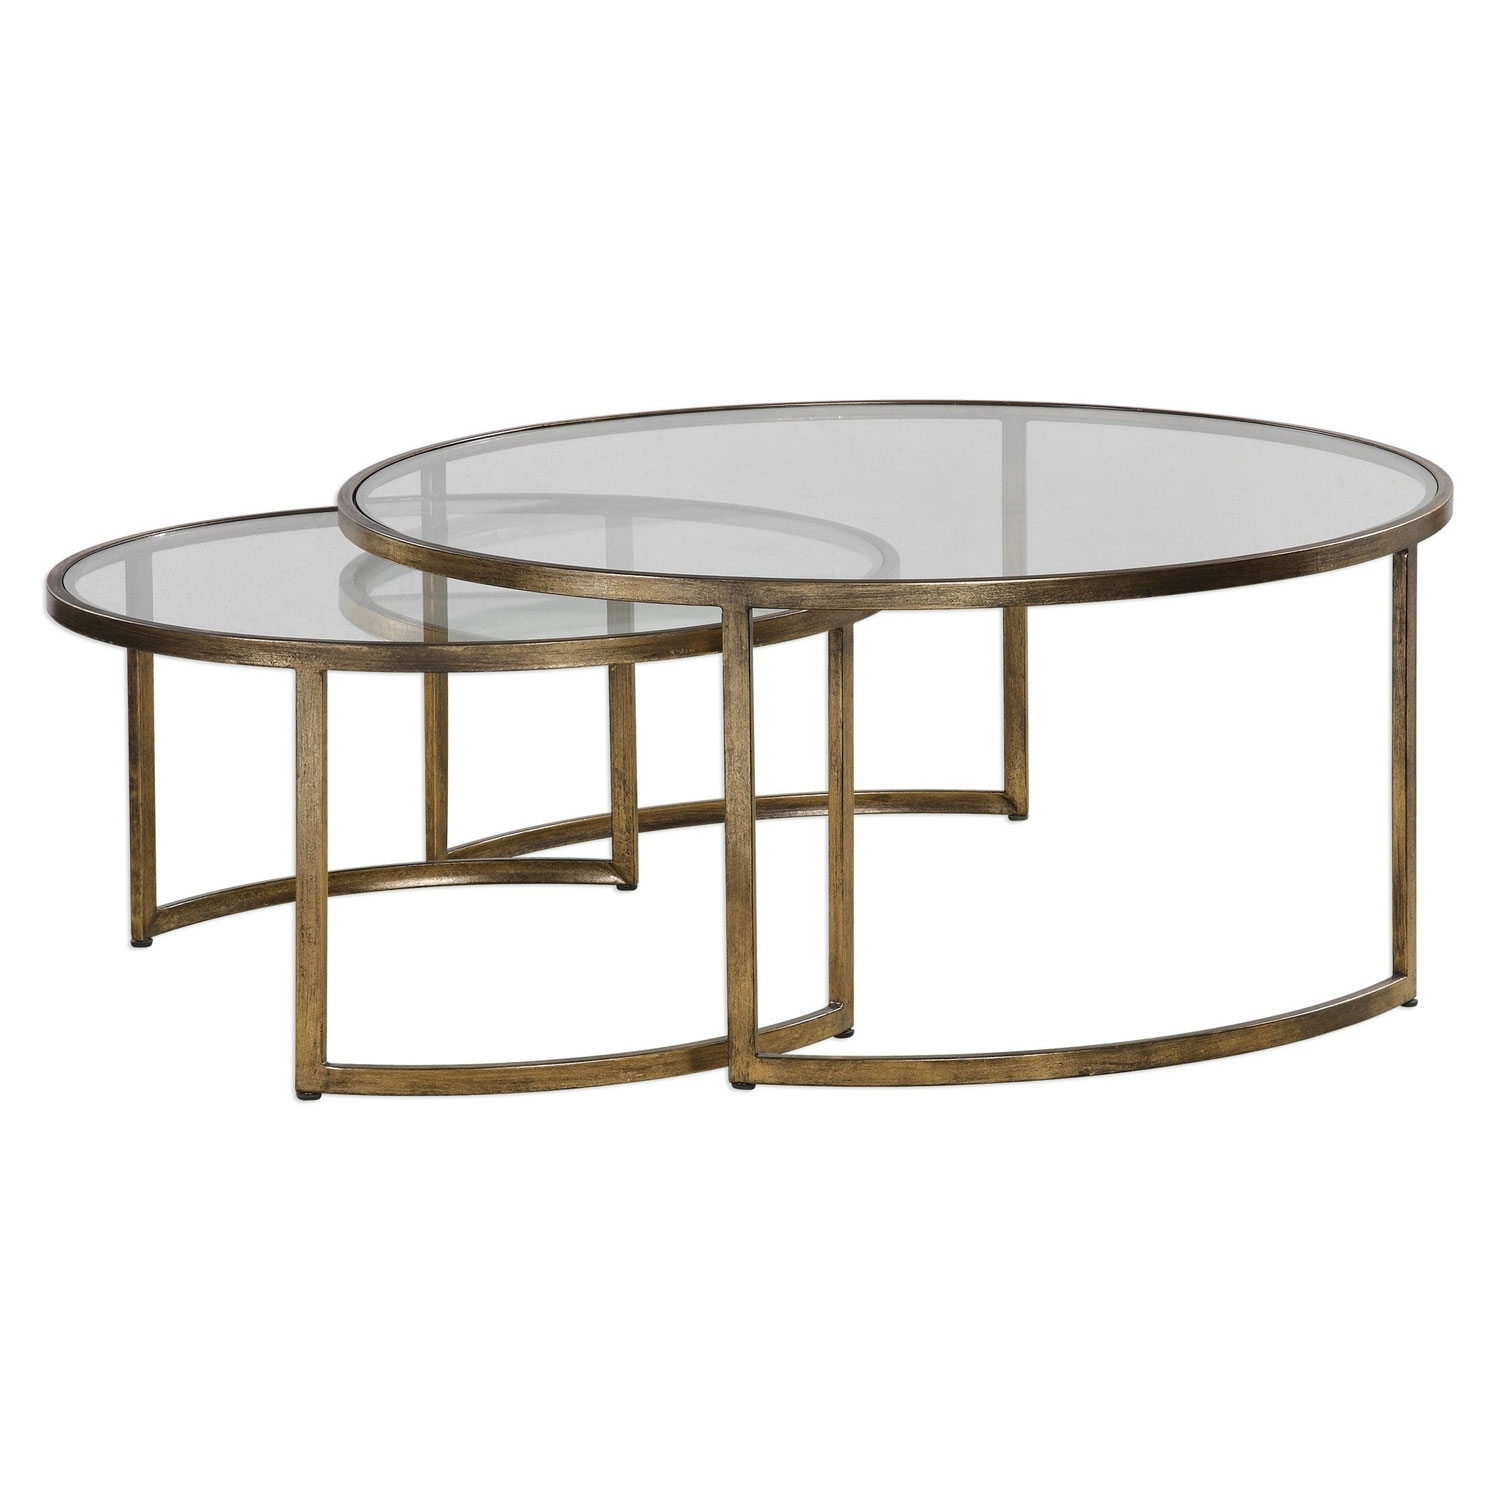 Uttermost Rhea Nested Coffee Tables, Set Of Two 24747 | Bellacor for Set Of Nesting Coffee Tables (Image 30 of 30)